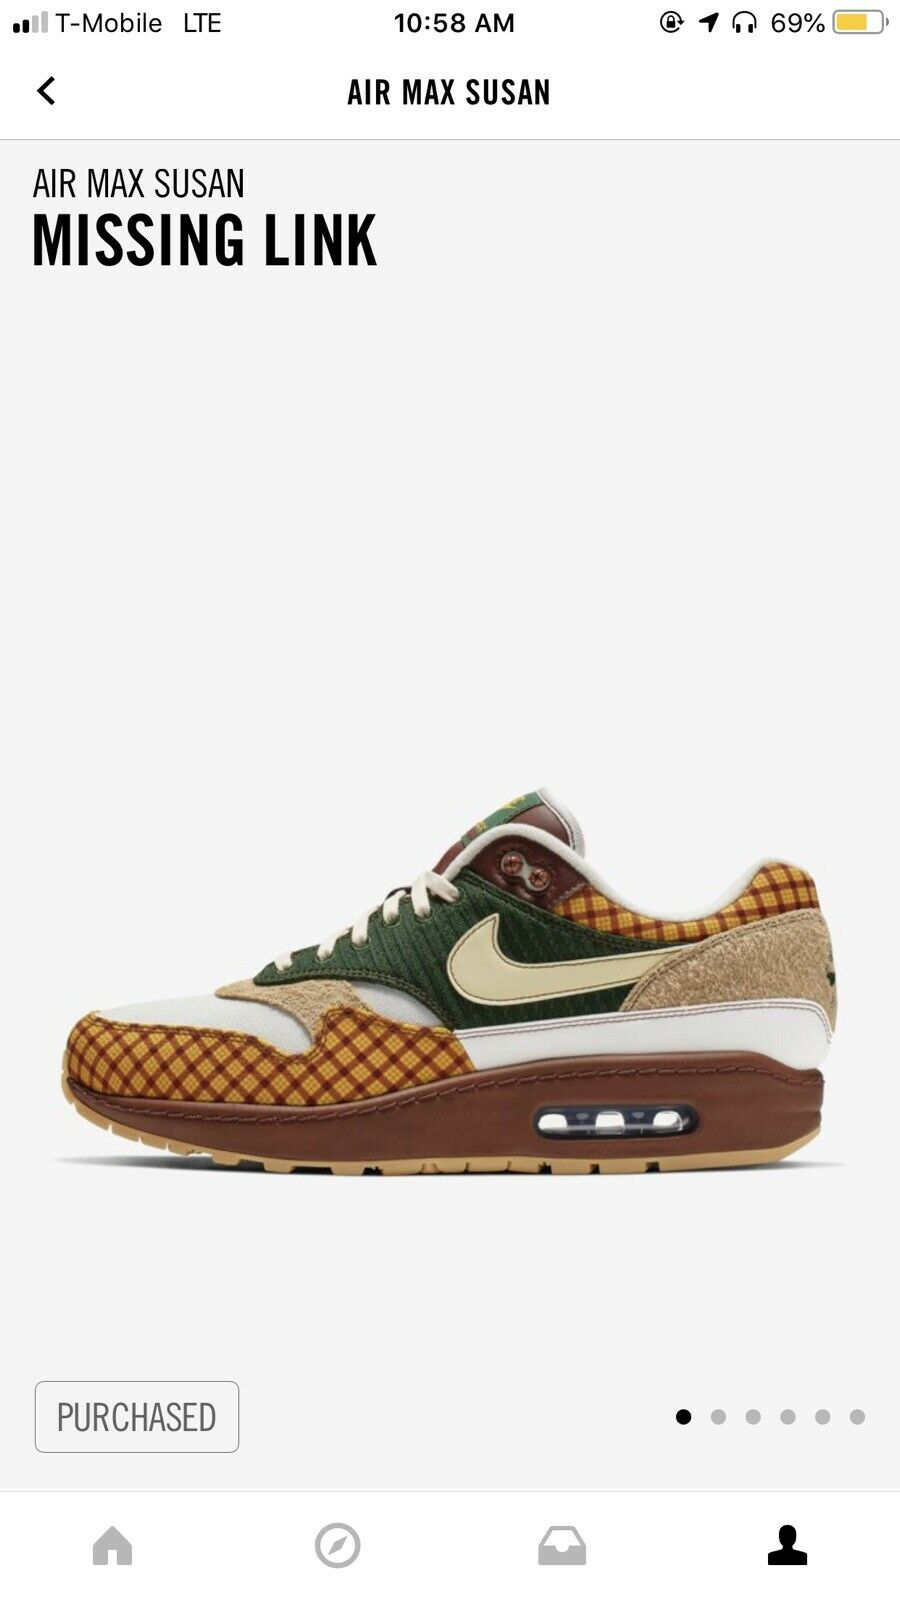 Air max 1 Susan Missing Link Size 9.5